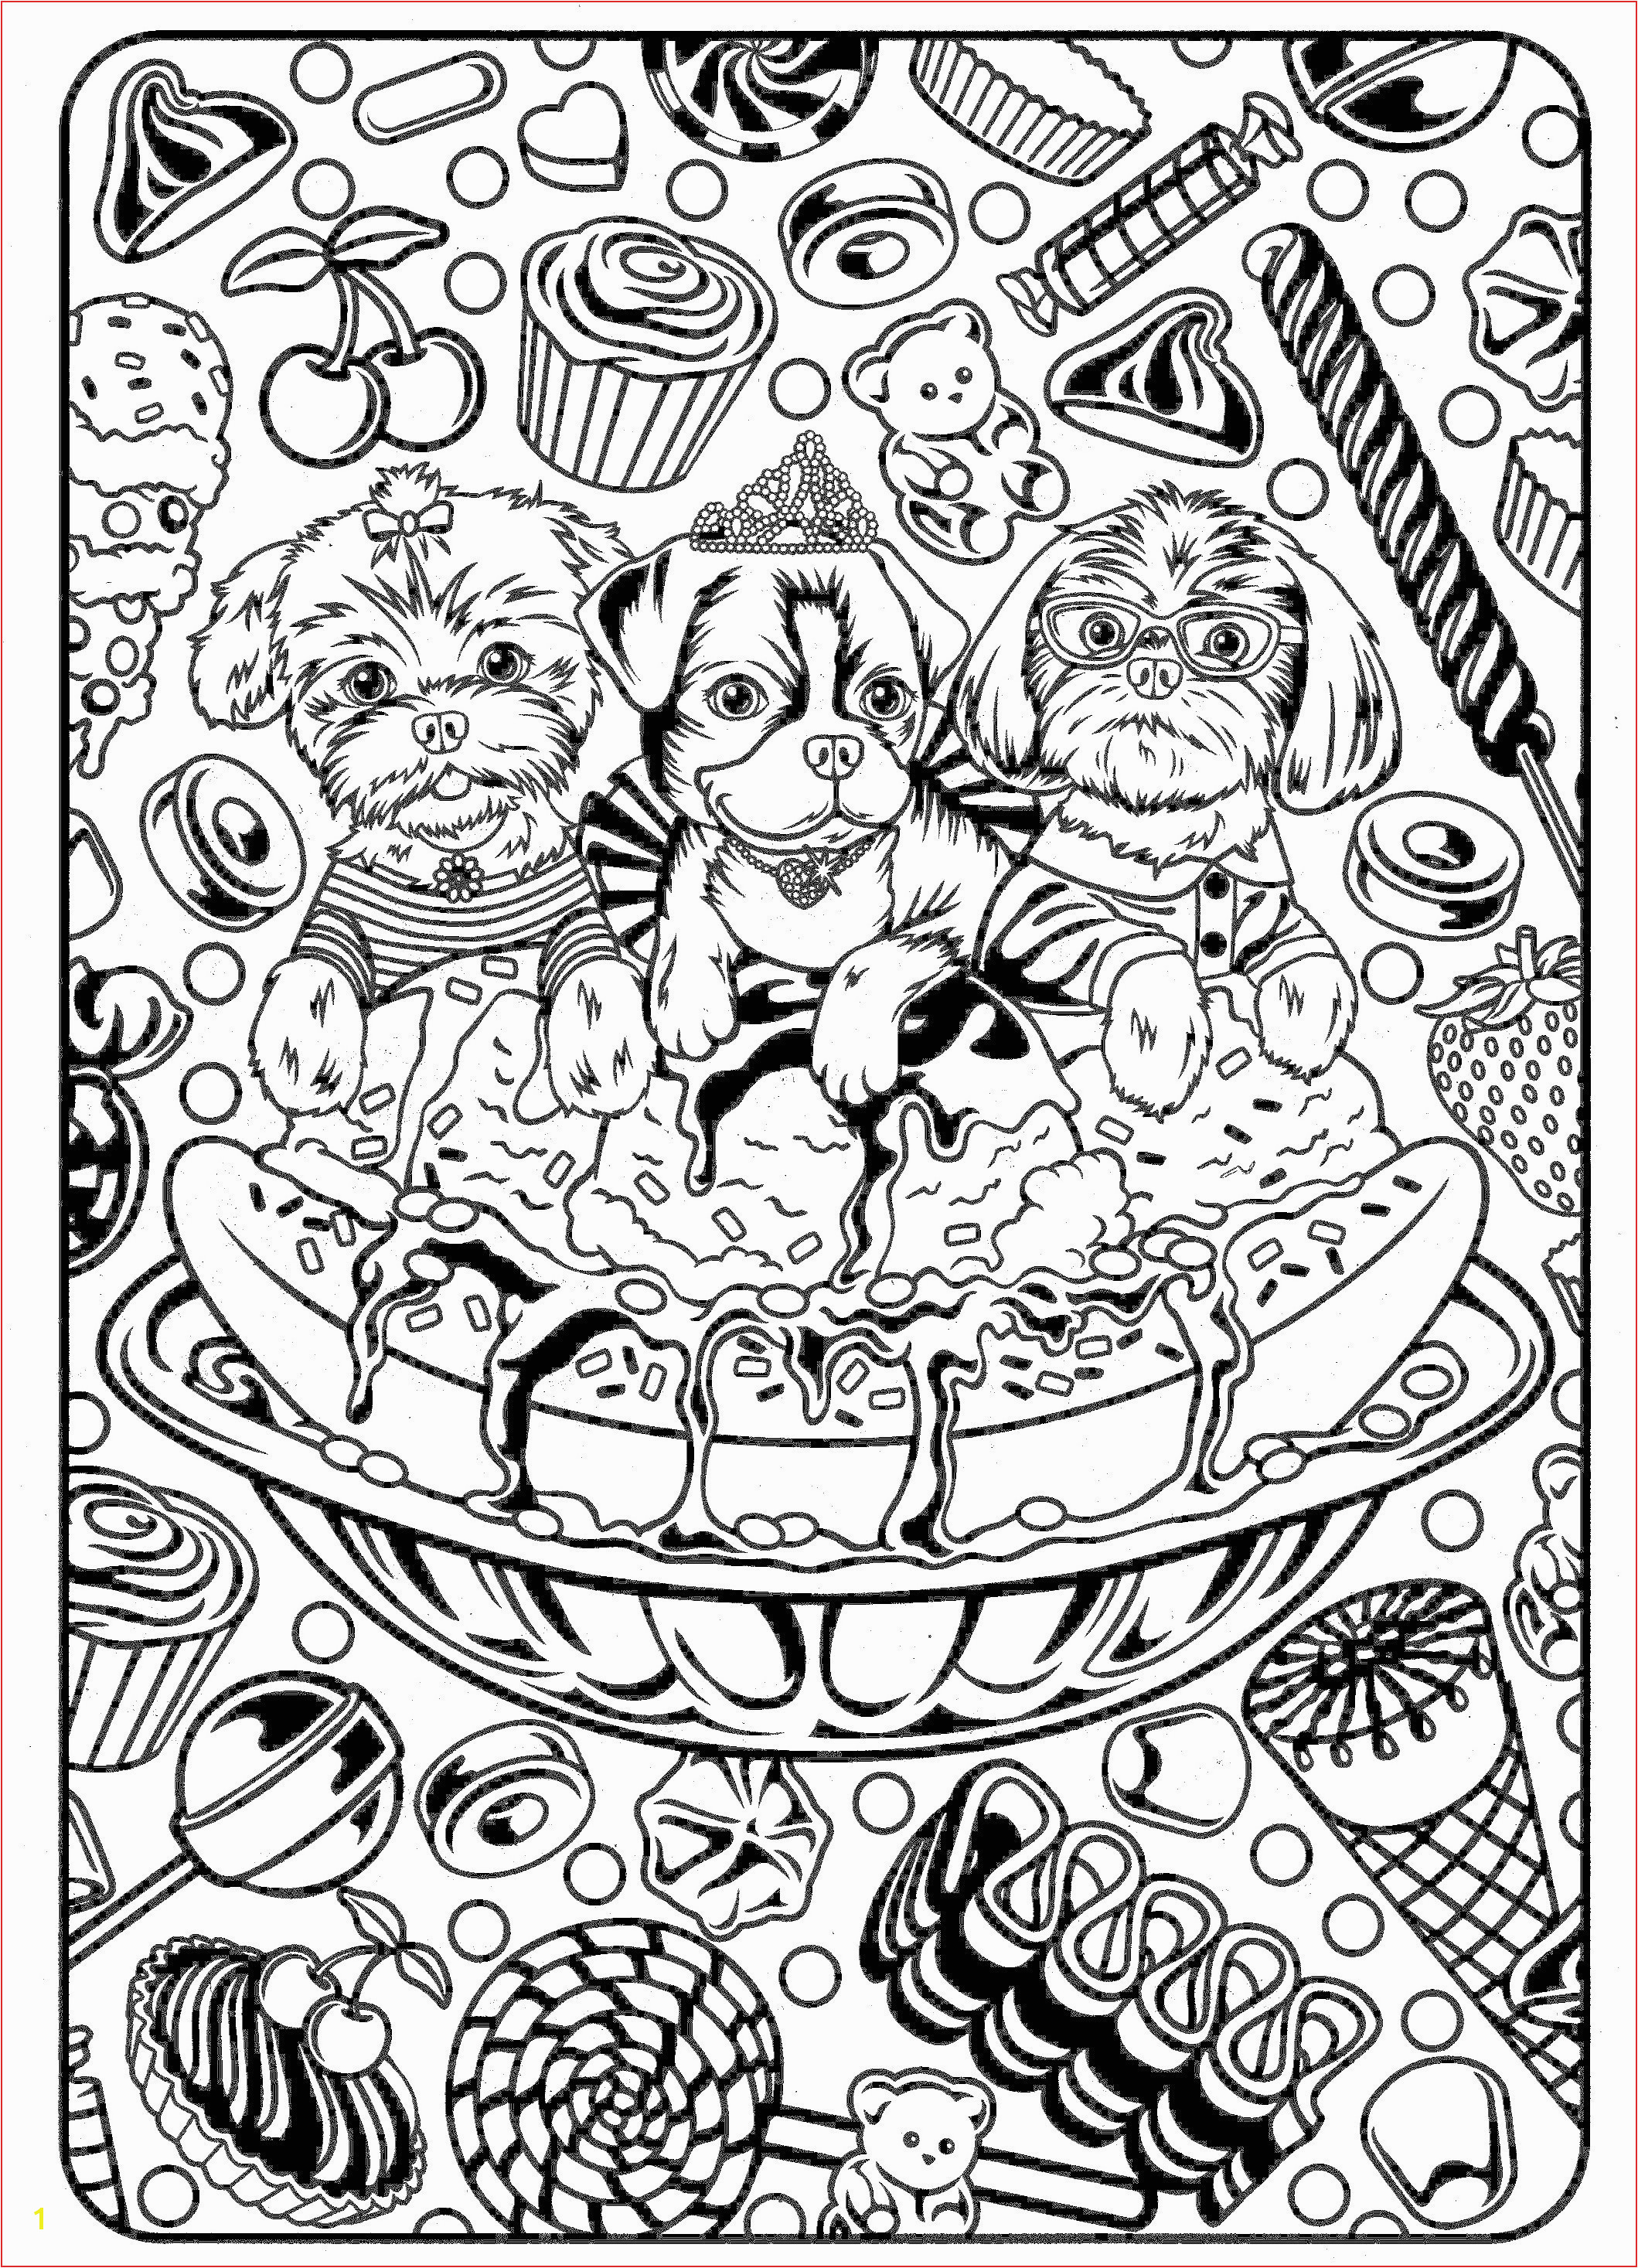 Free Coloring Pages Free Coloring Pages Elegant Crayola Pages 0d Archives Se Telefonyfo